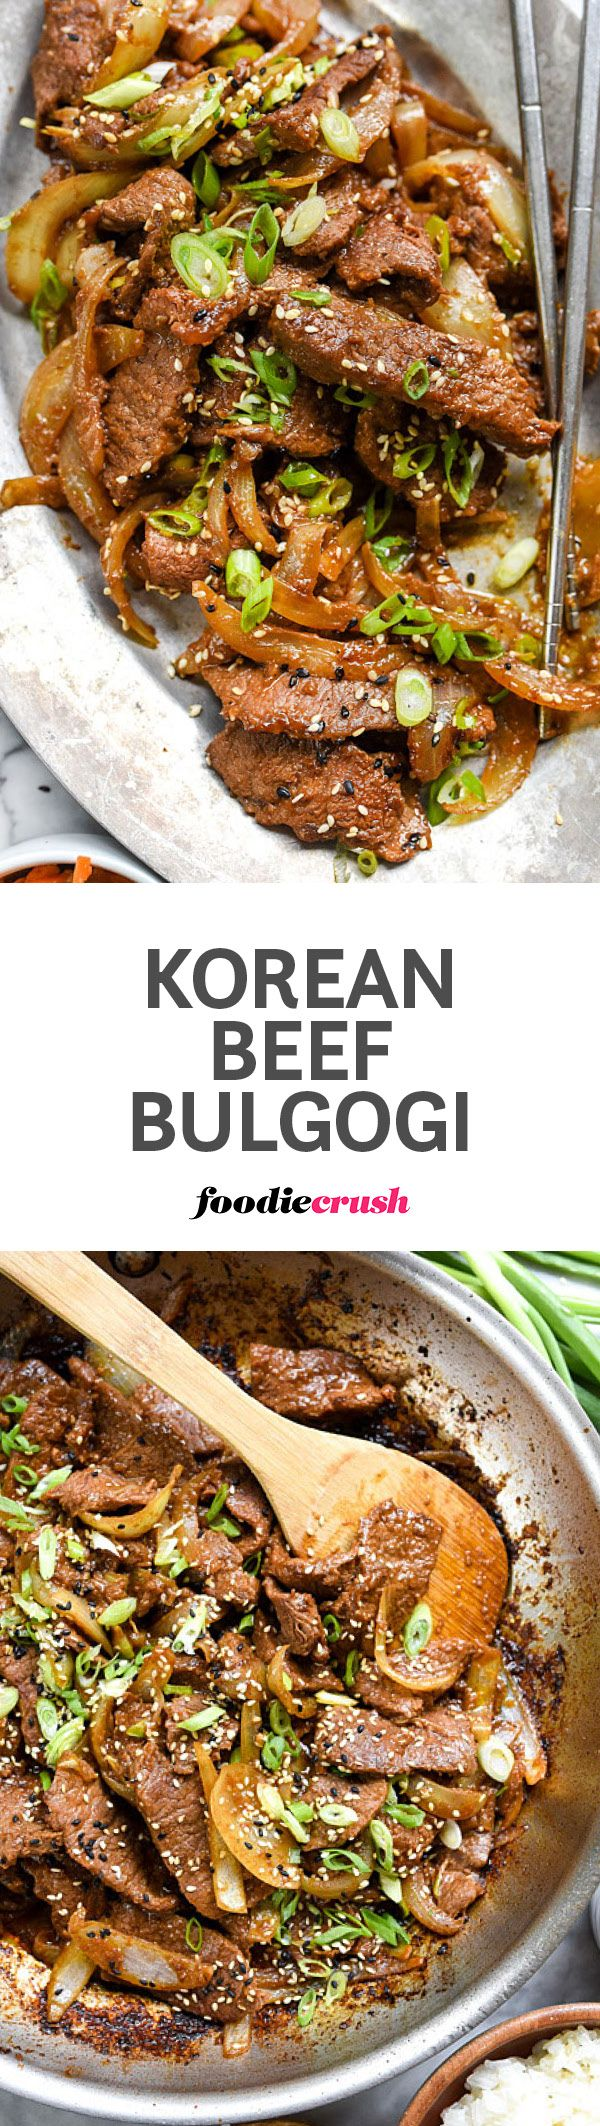 A simple but flavorful marinade of soy sauce and Korean spice paste sweetened with Asian pear makes this thinly sliced beef a stand out dinner | http://foodiecrush.com #korean #beef #bulgogi #dinner